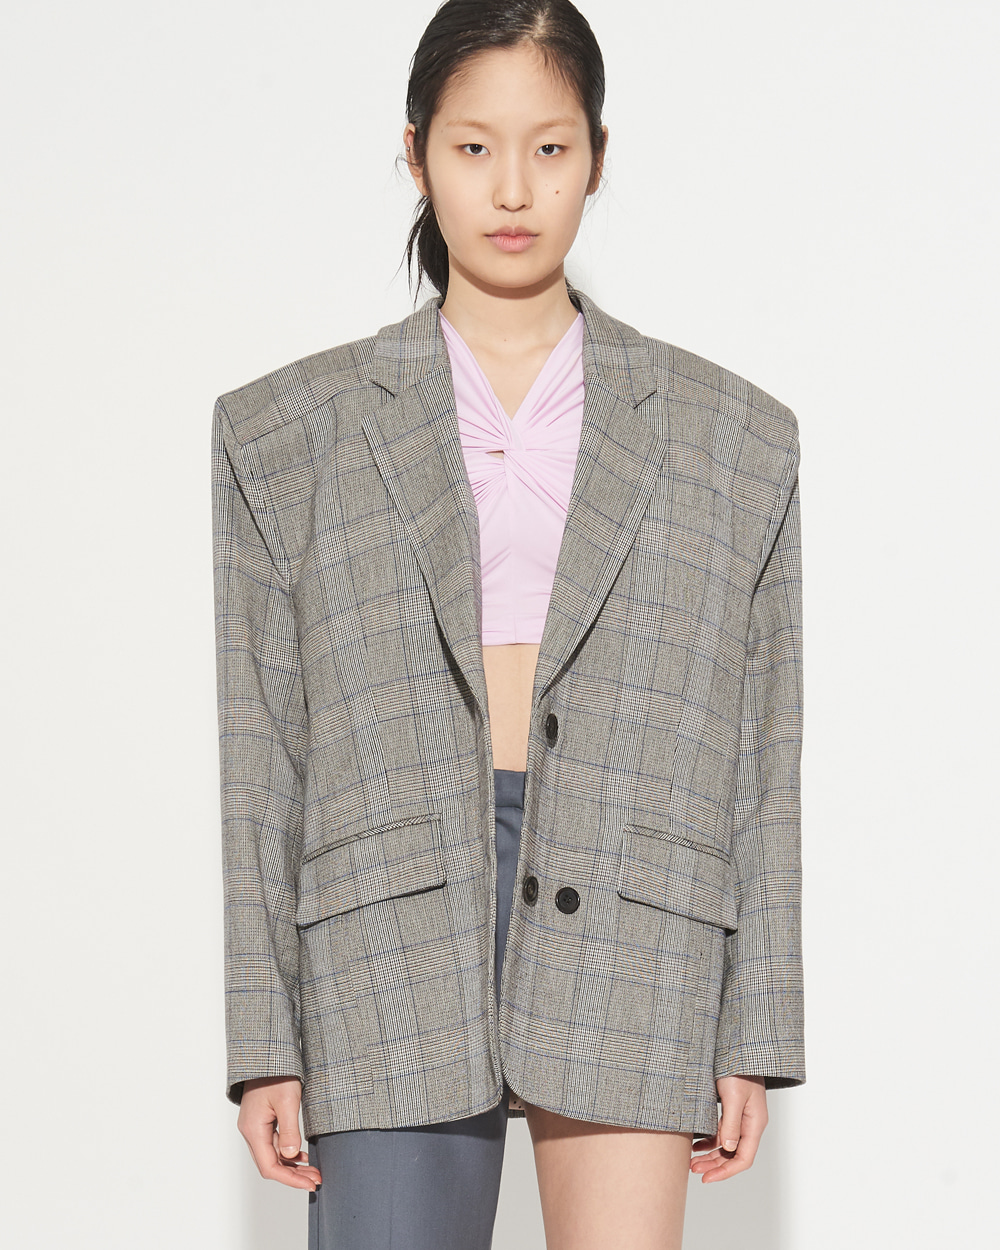 SS19 BOX SHOULDER CHECK JACKET